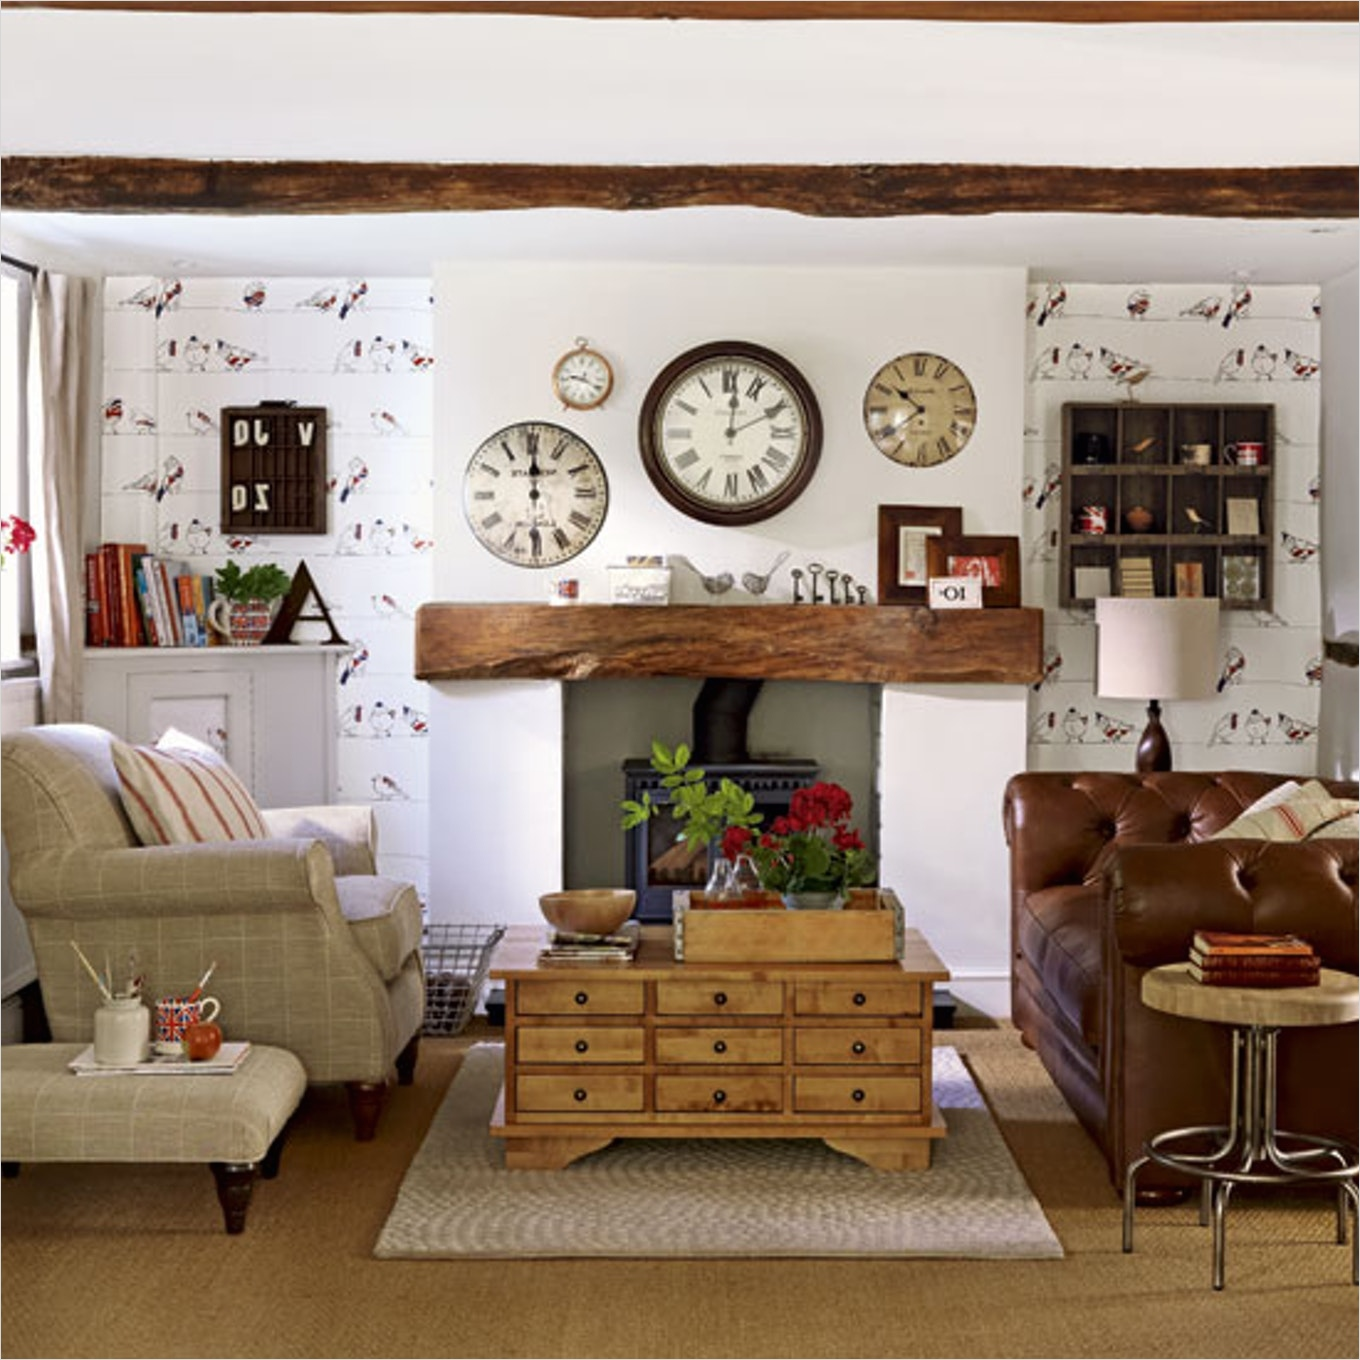 45 Amazing Ideas Country Chic Living Room 53 Country Rustic Living Room Chic Decor From Design Militariart 4